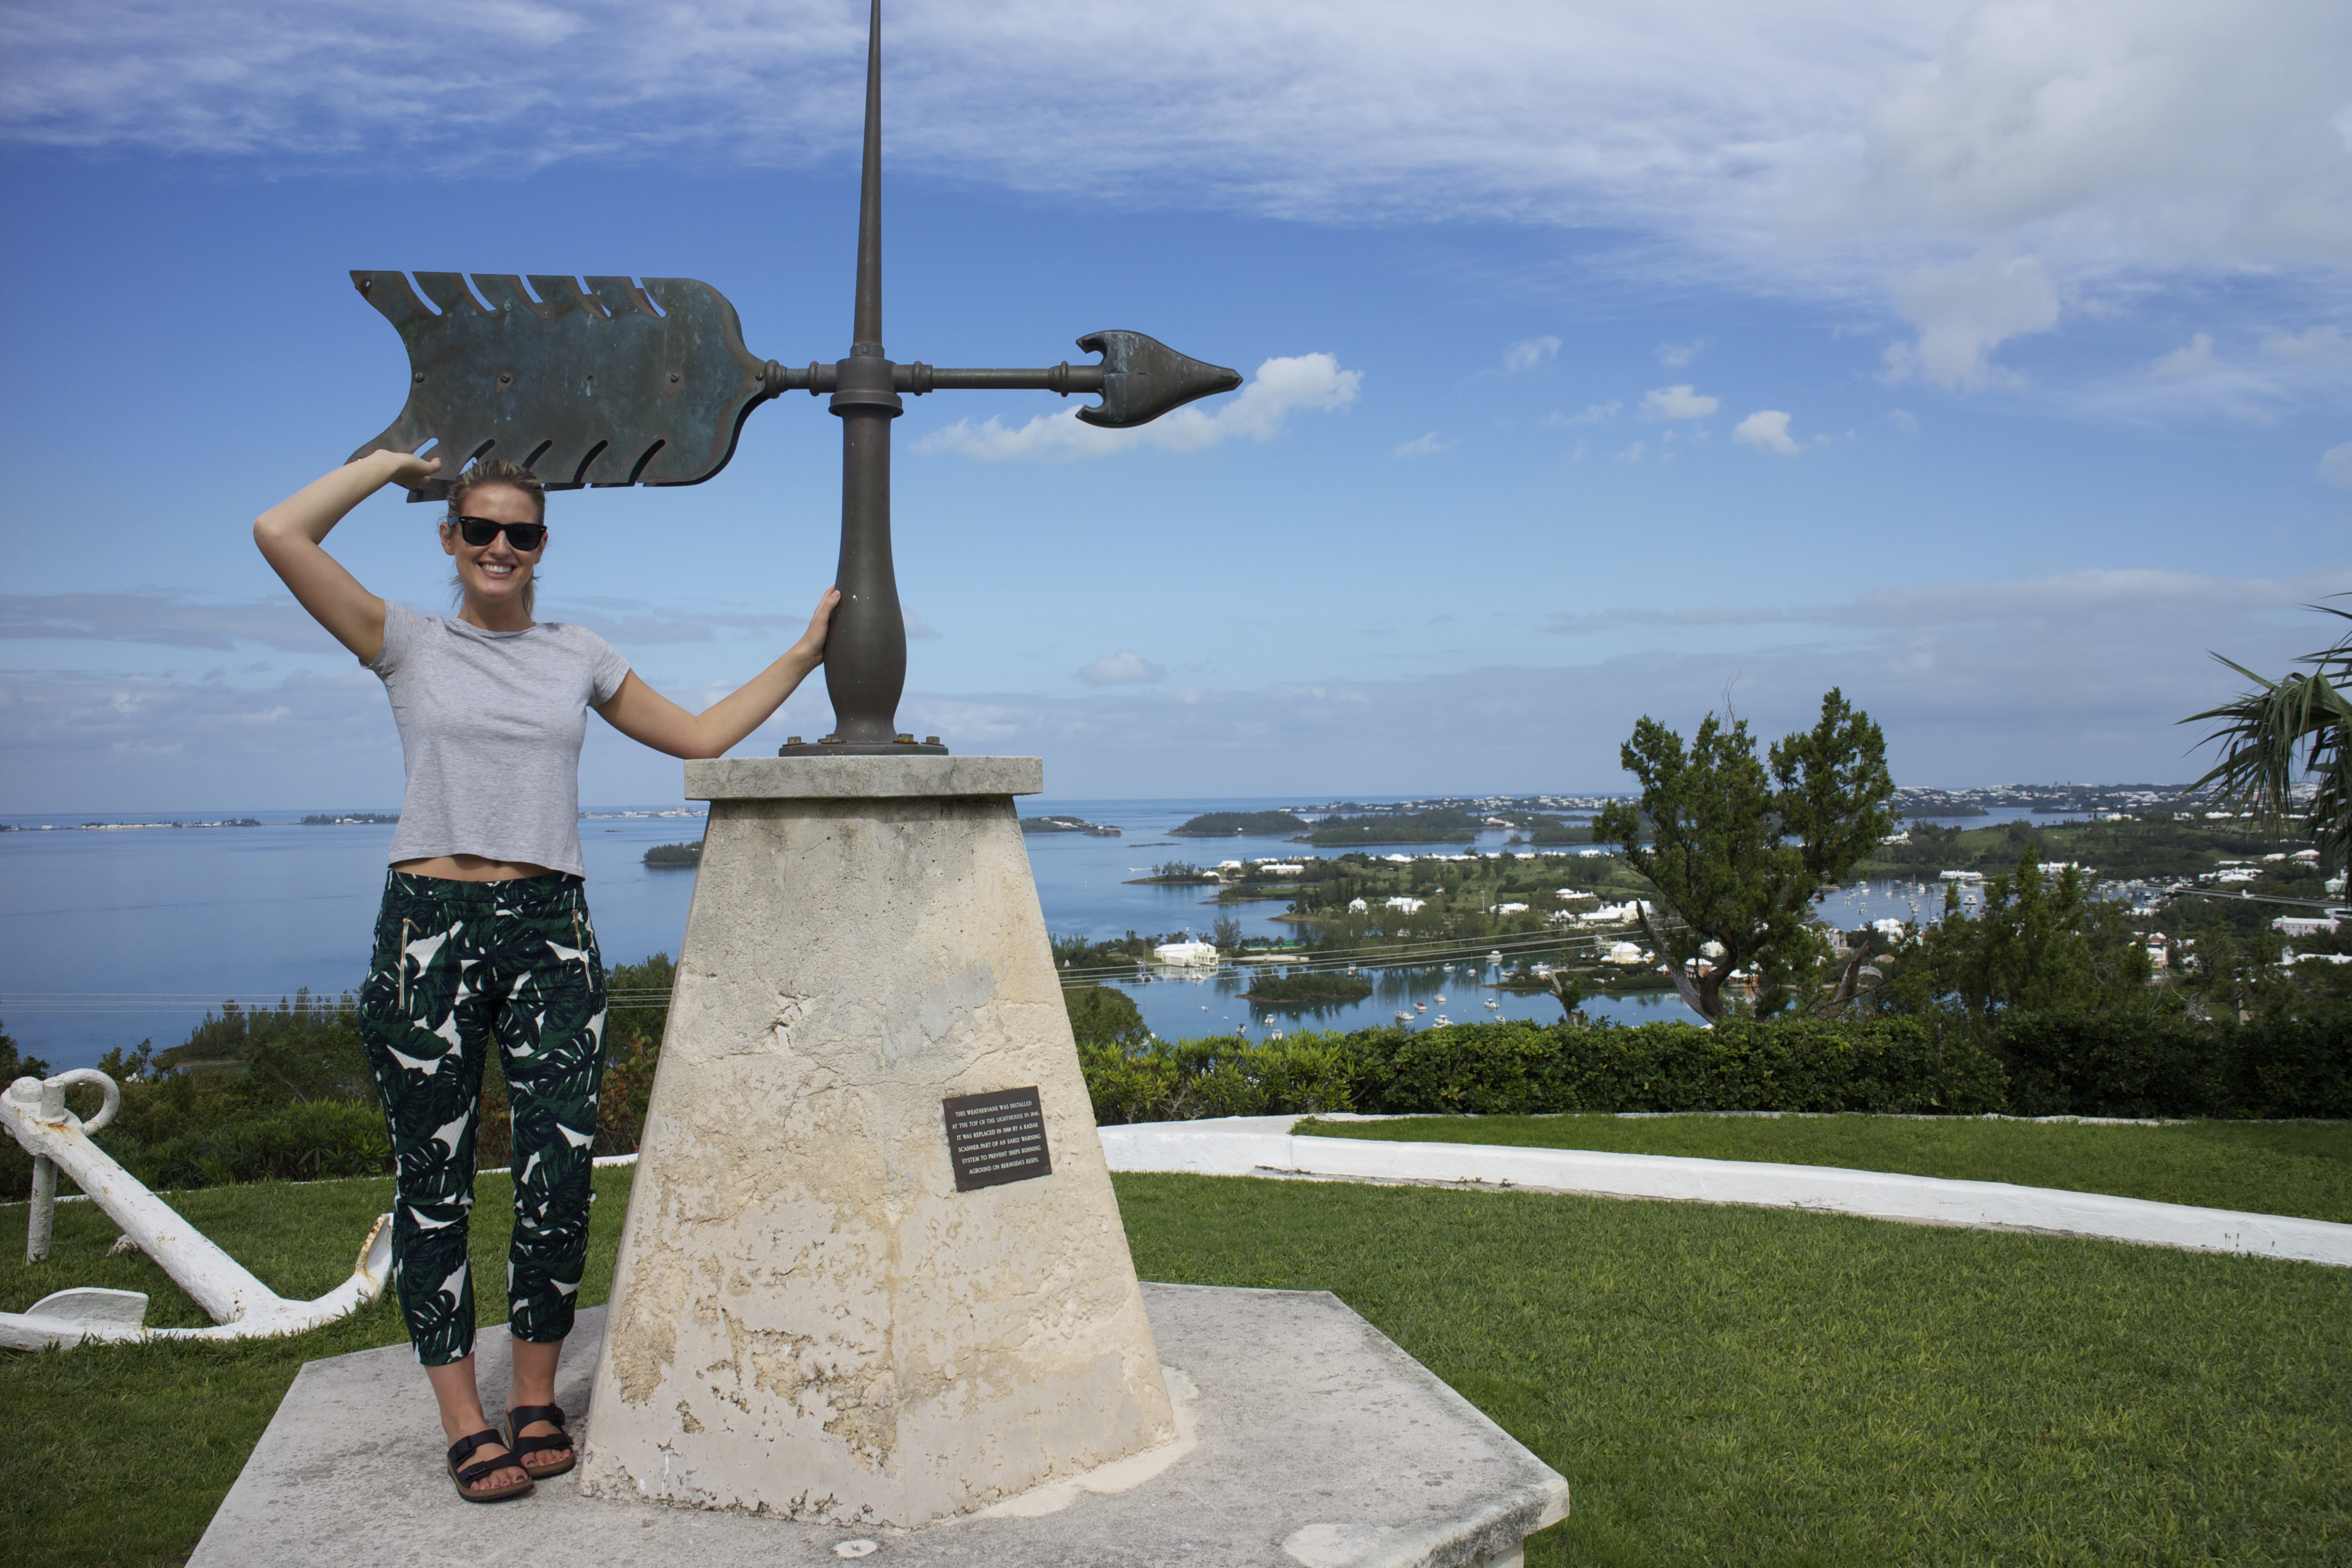 BERMUDA TRAVEL GUIDE: DAY 2